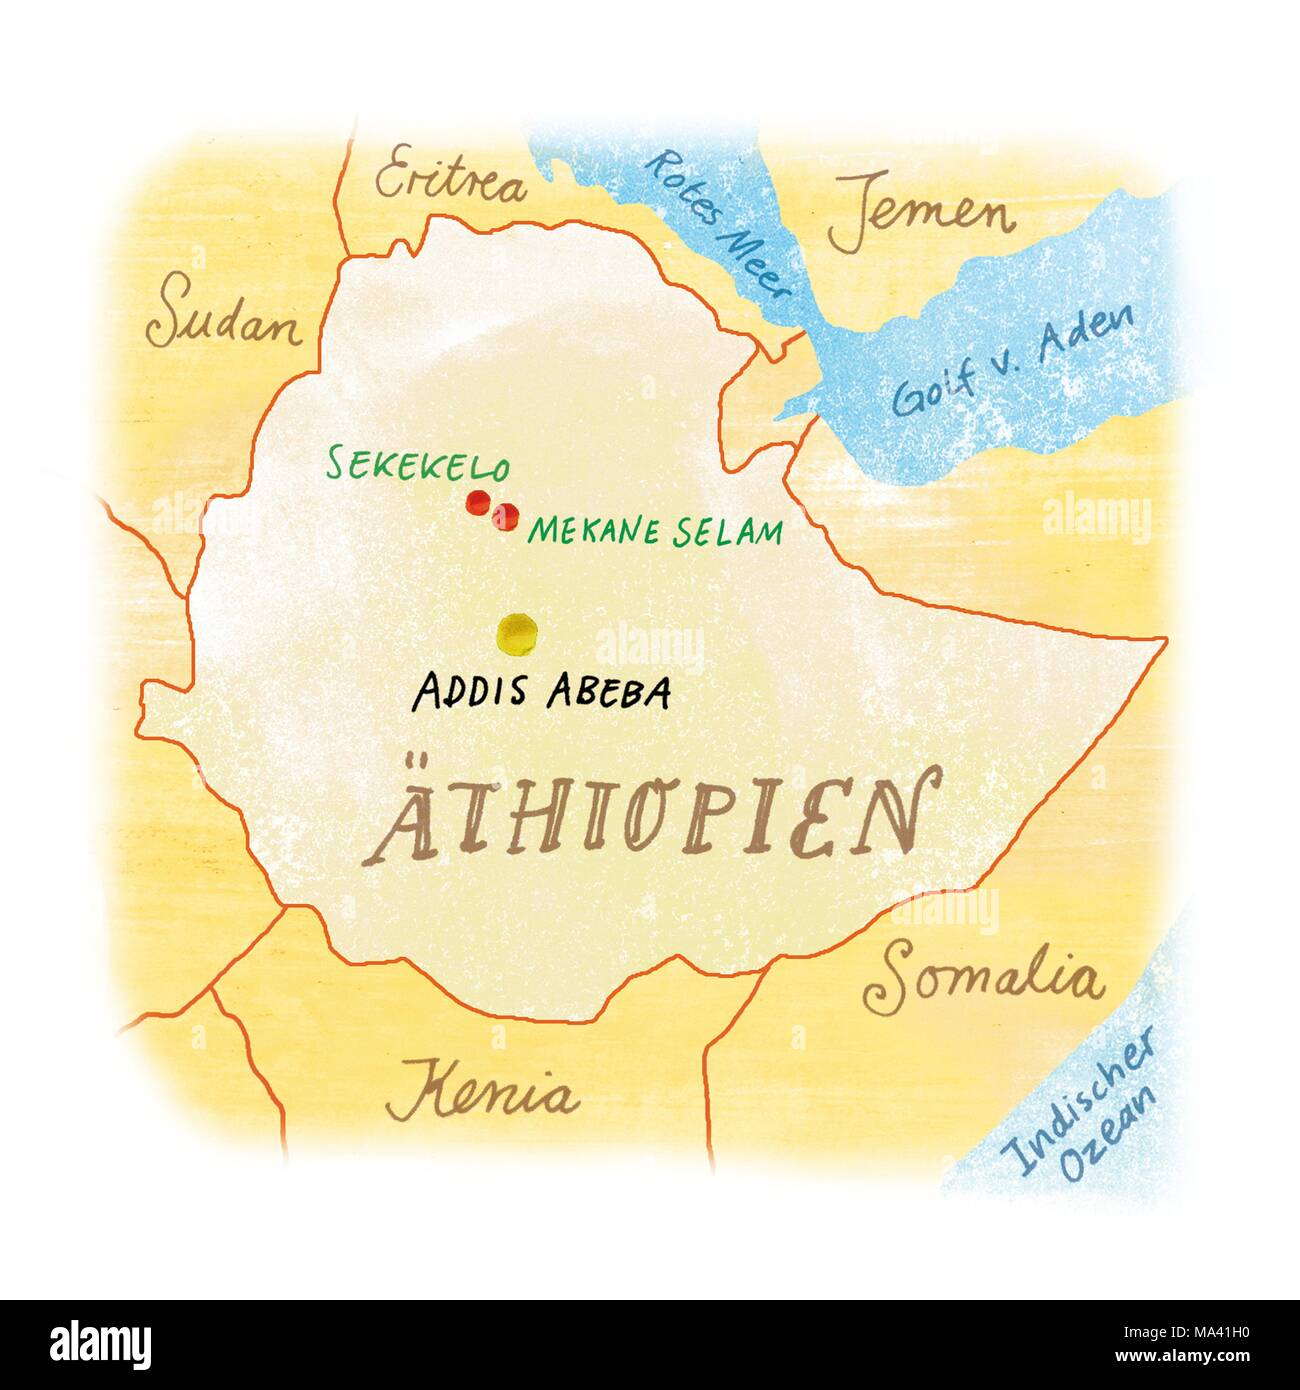 A map of Ethiopia - Stock Image